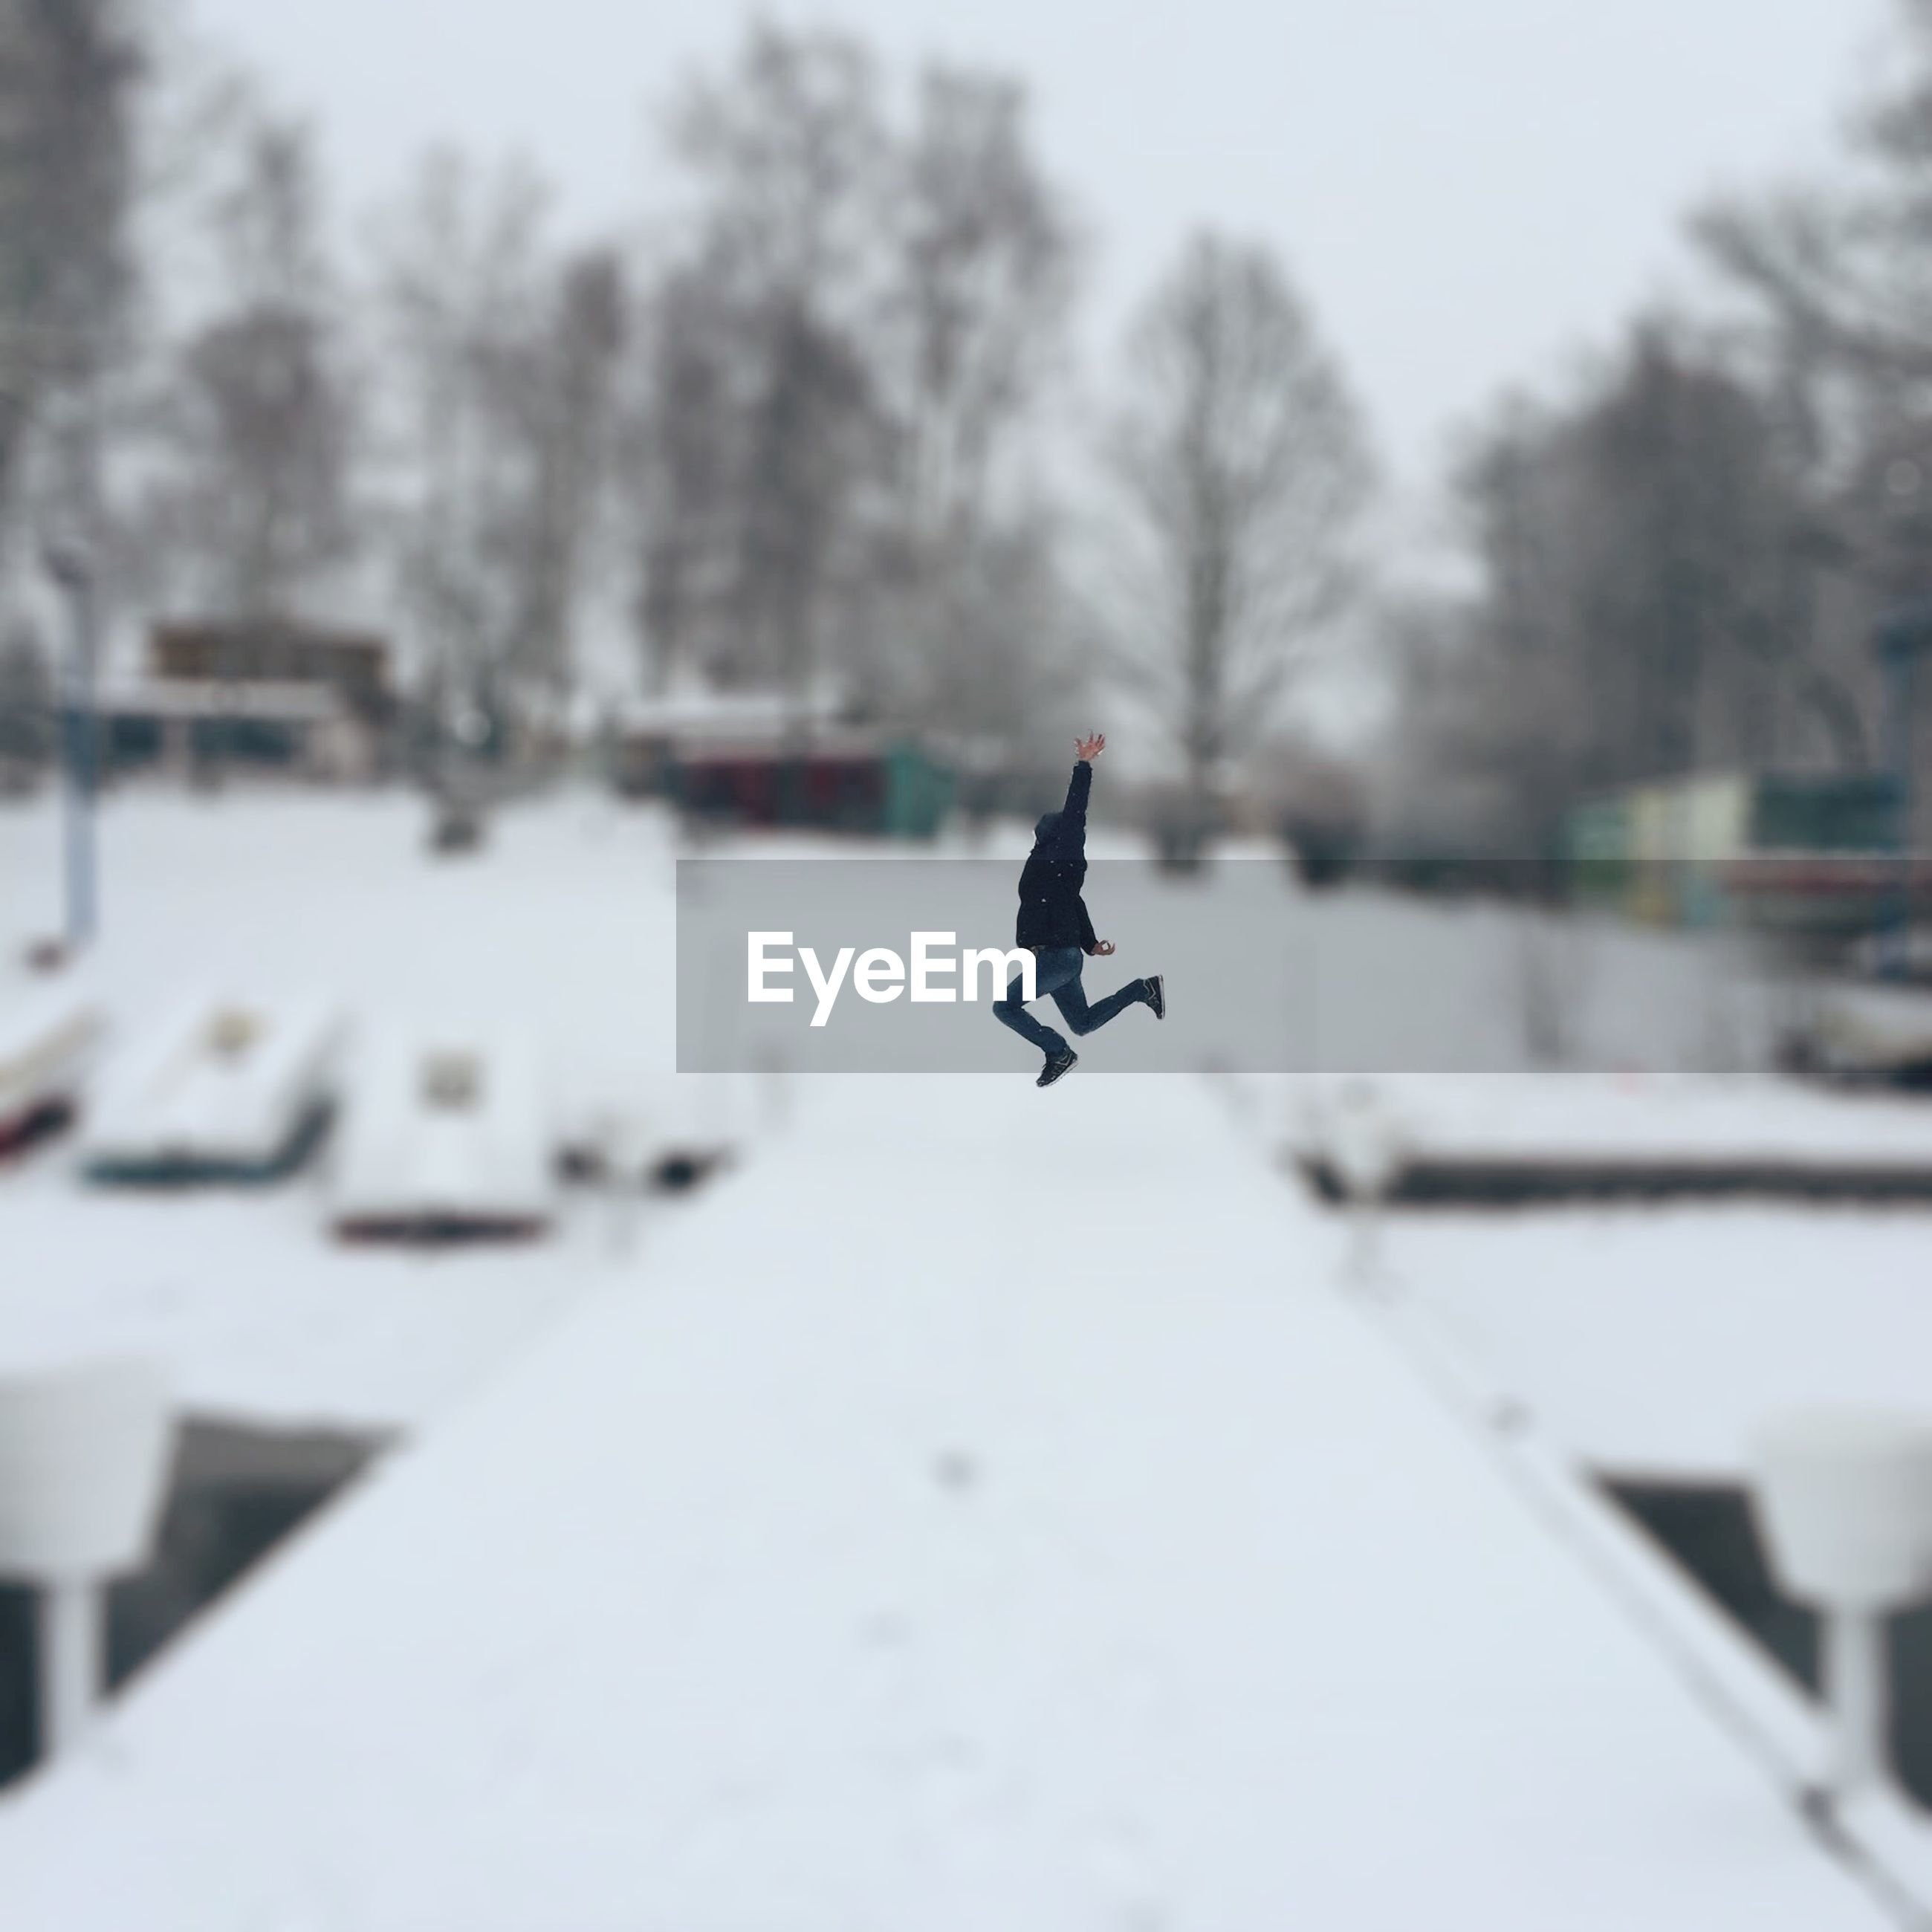 Tilt shift image of person jumping over snow covered walkway